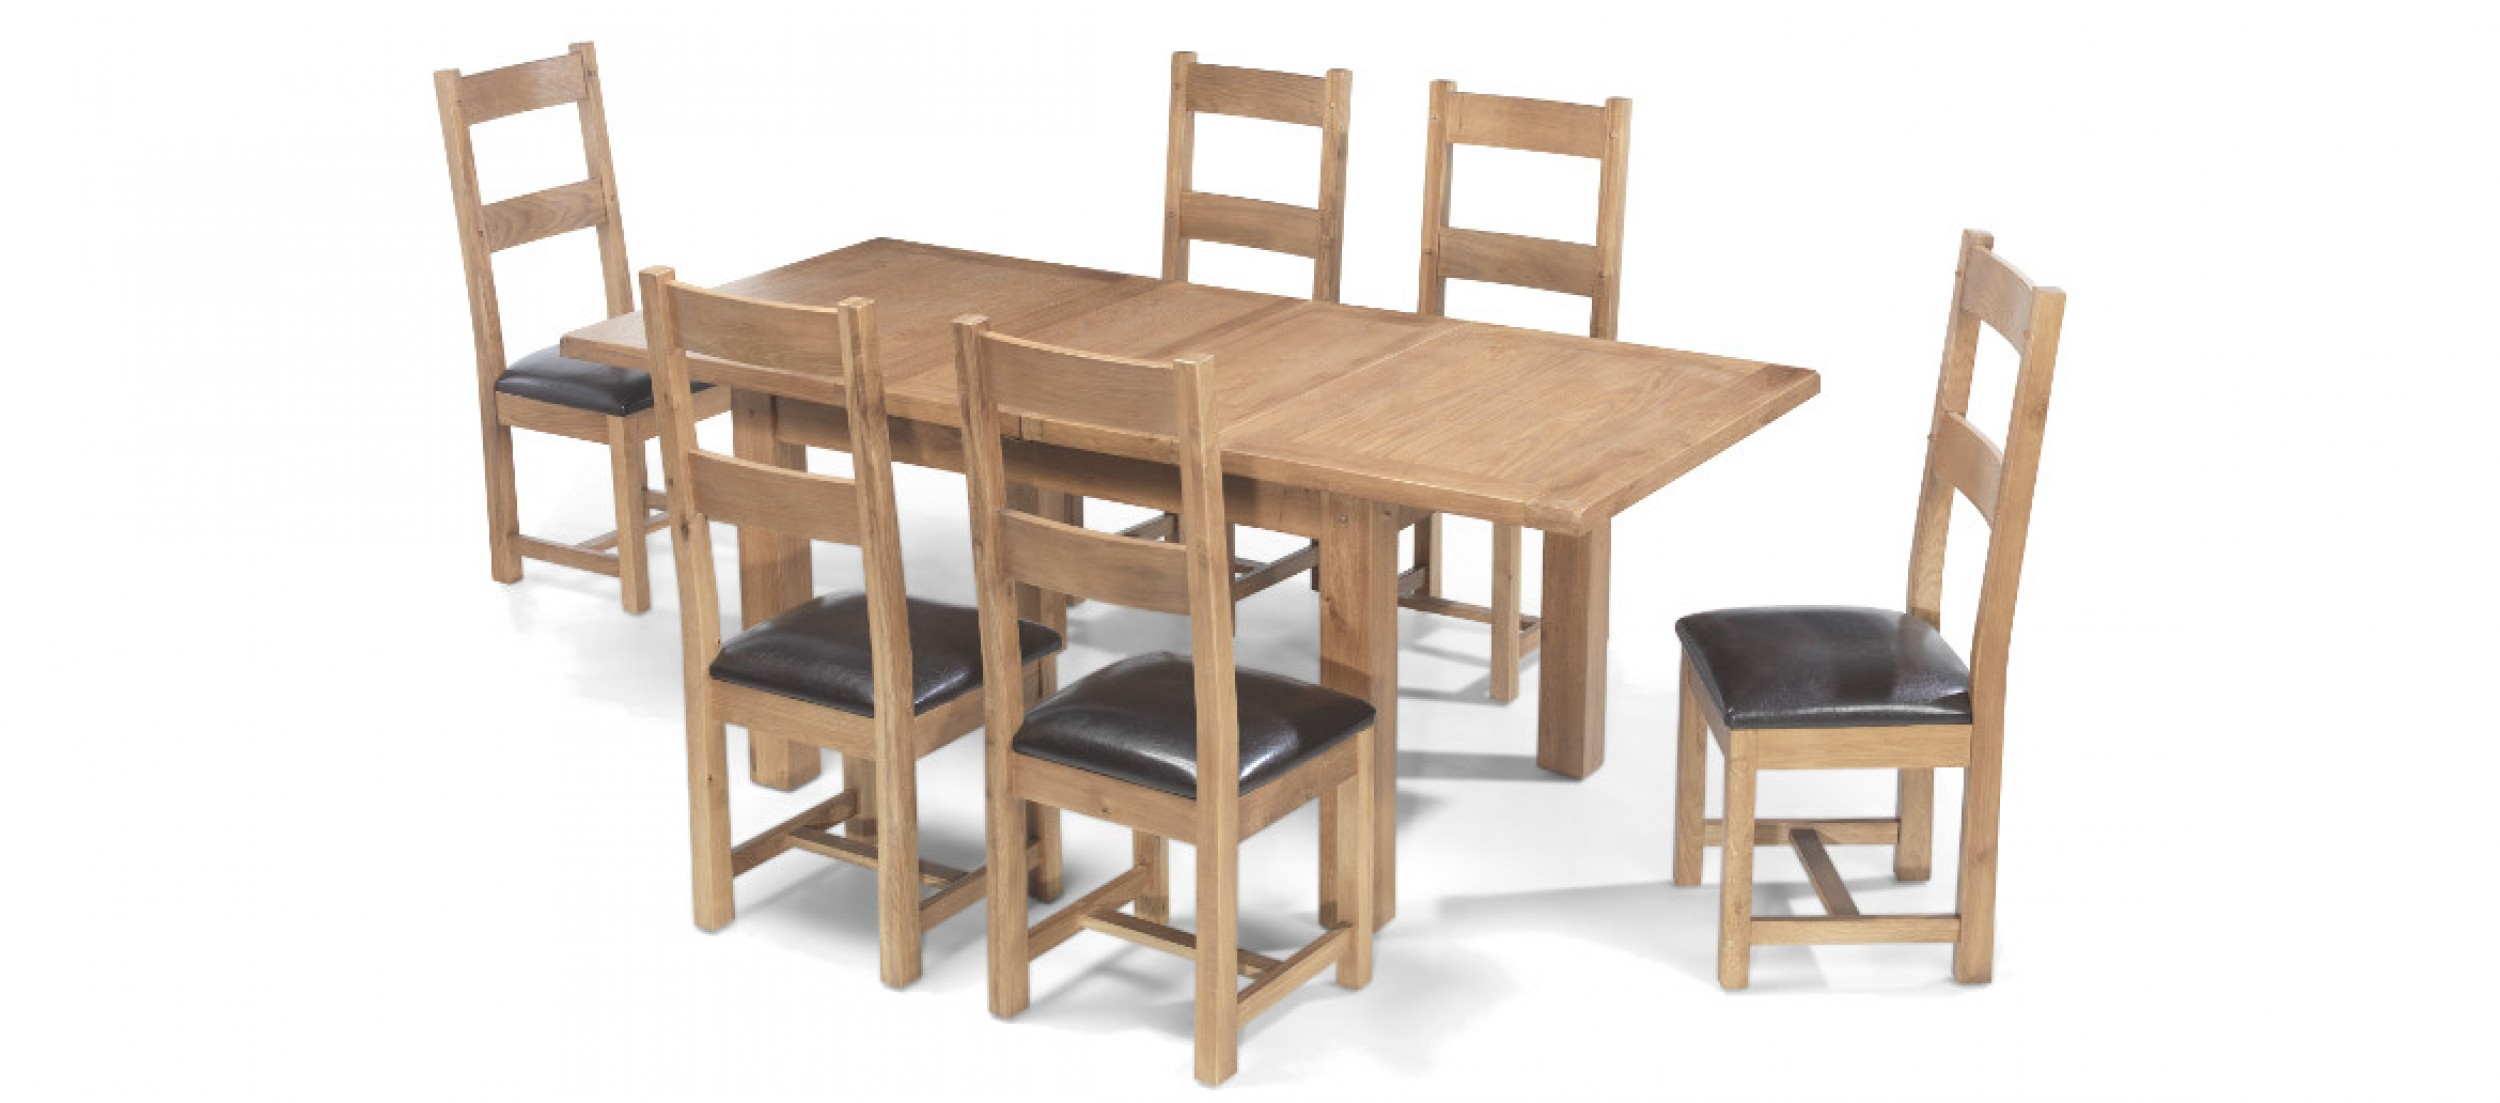 rustic oak 132 198 cm extending dining table and 6 chairs - Solid Oak Extending Dining Table And 6 Chairs